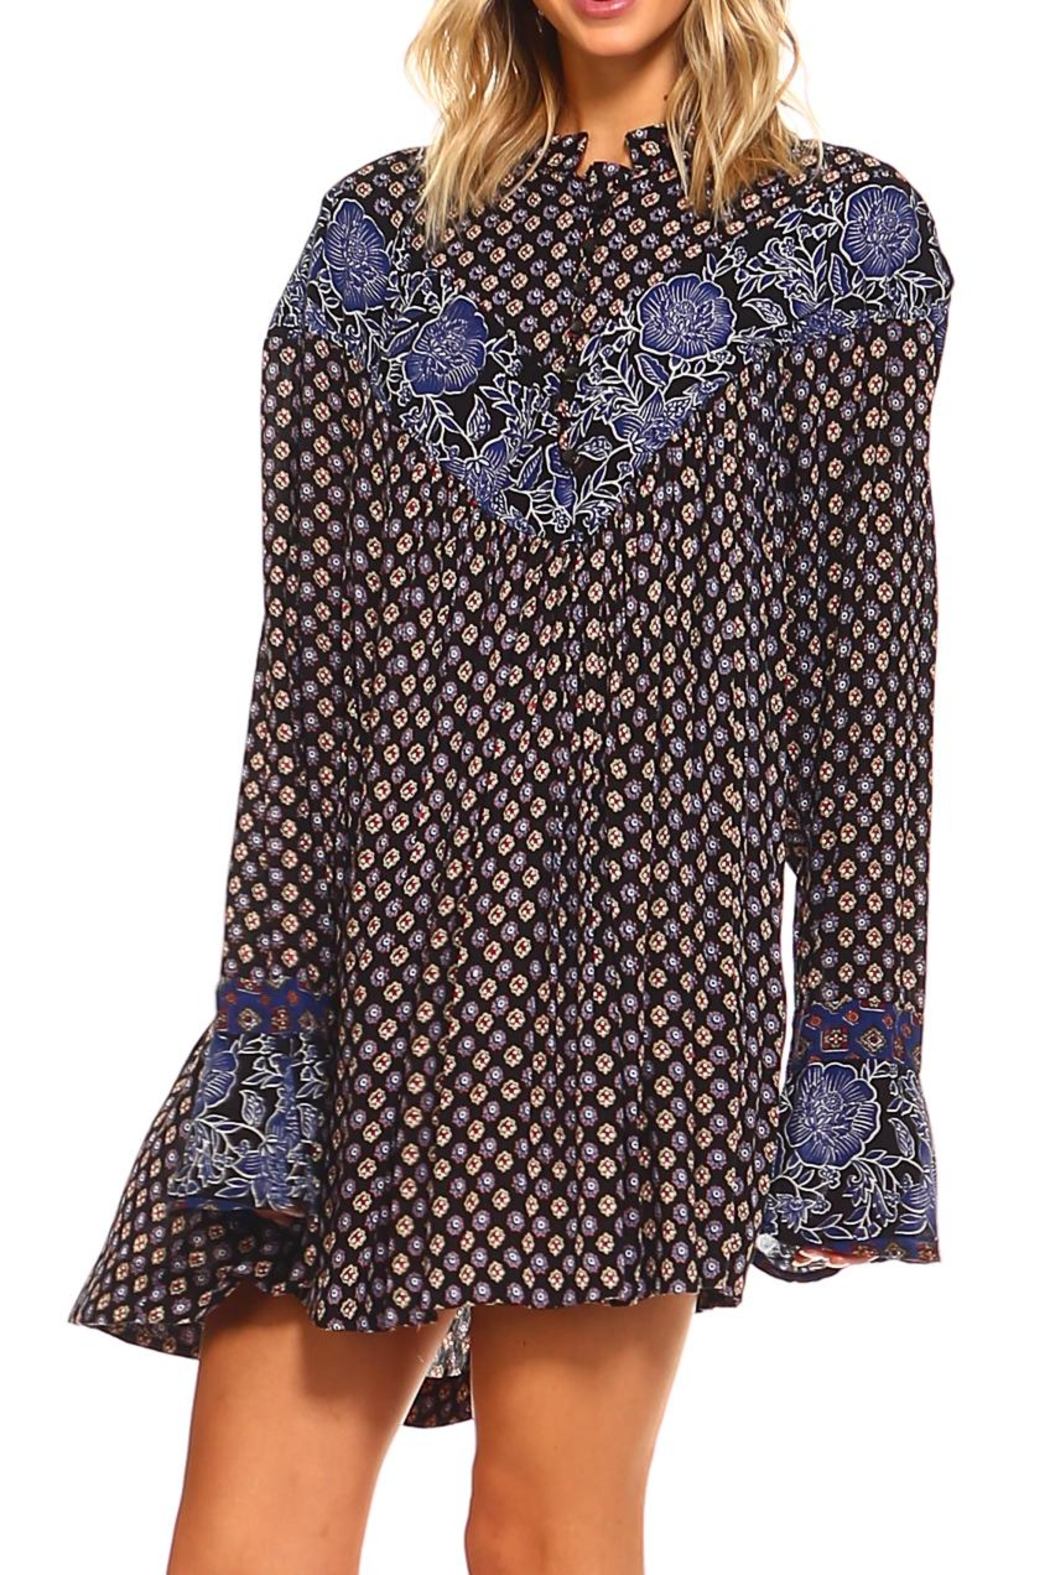 Lola P. Printed Woven Tunic - Front Full Image